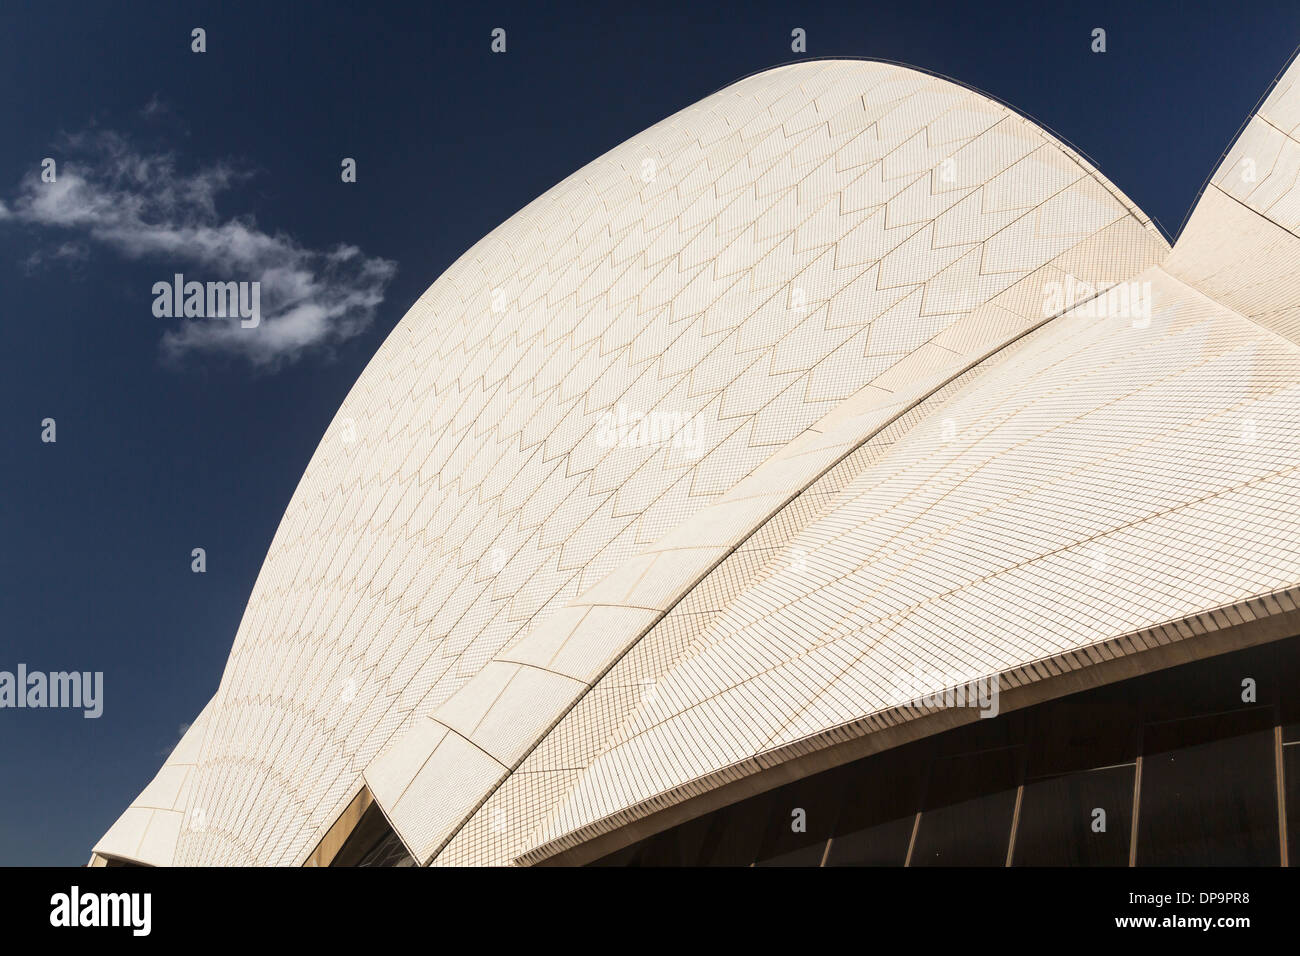 Architectural detail of the modern roof architecture of the Sydney Opera House, Australia - Stock Image